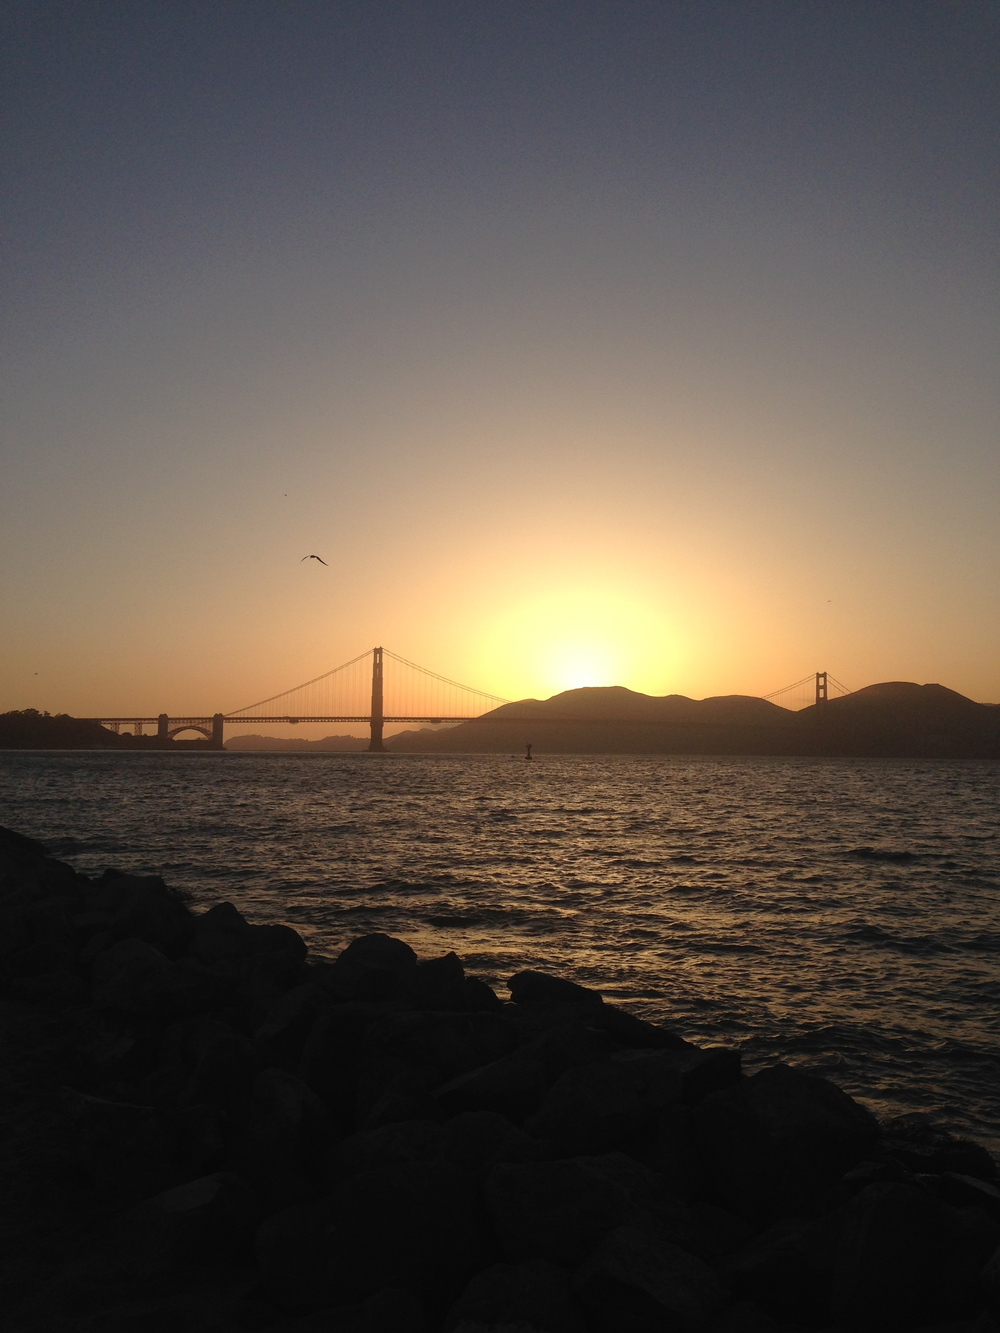 This is an unfiltered view of the Golden Gate bridge at Sunset at the Marina Green in San Francisco